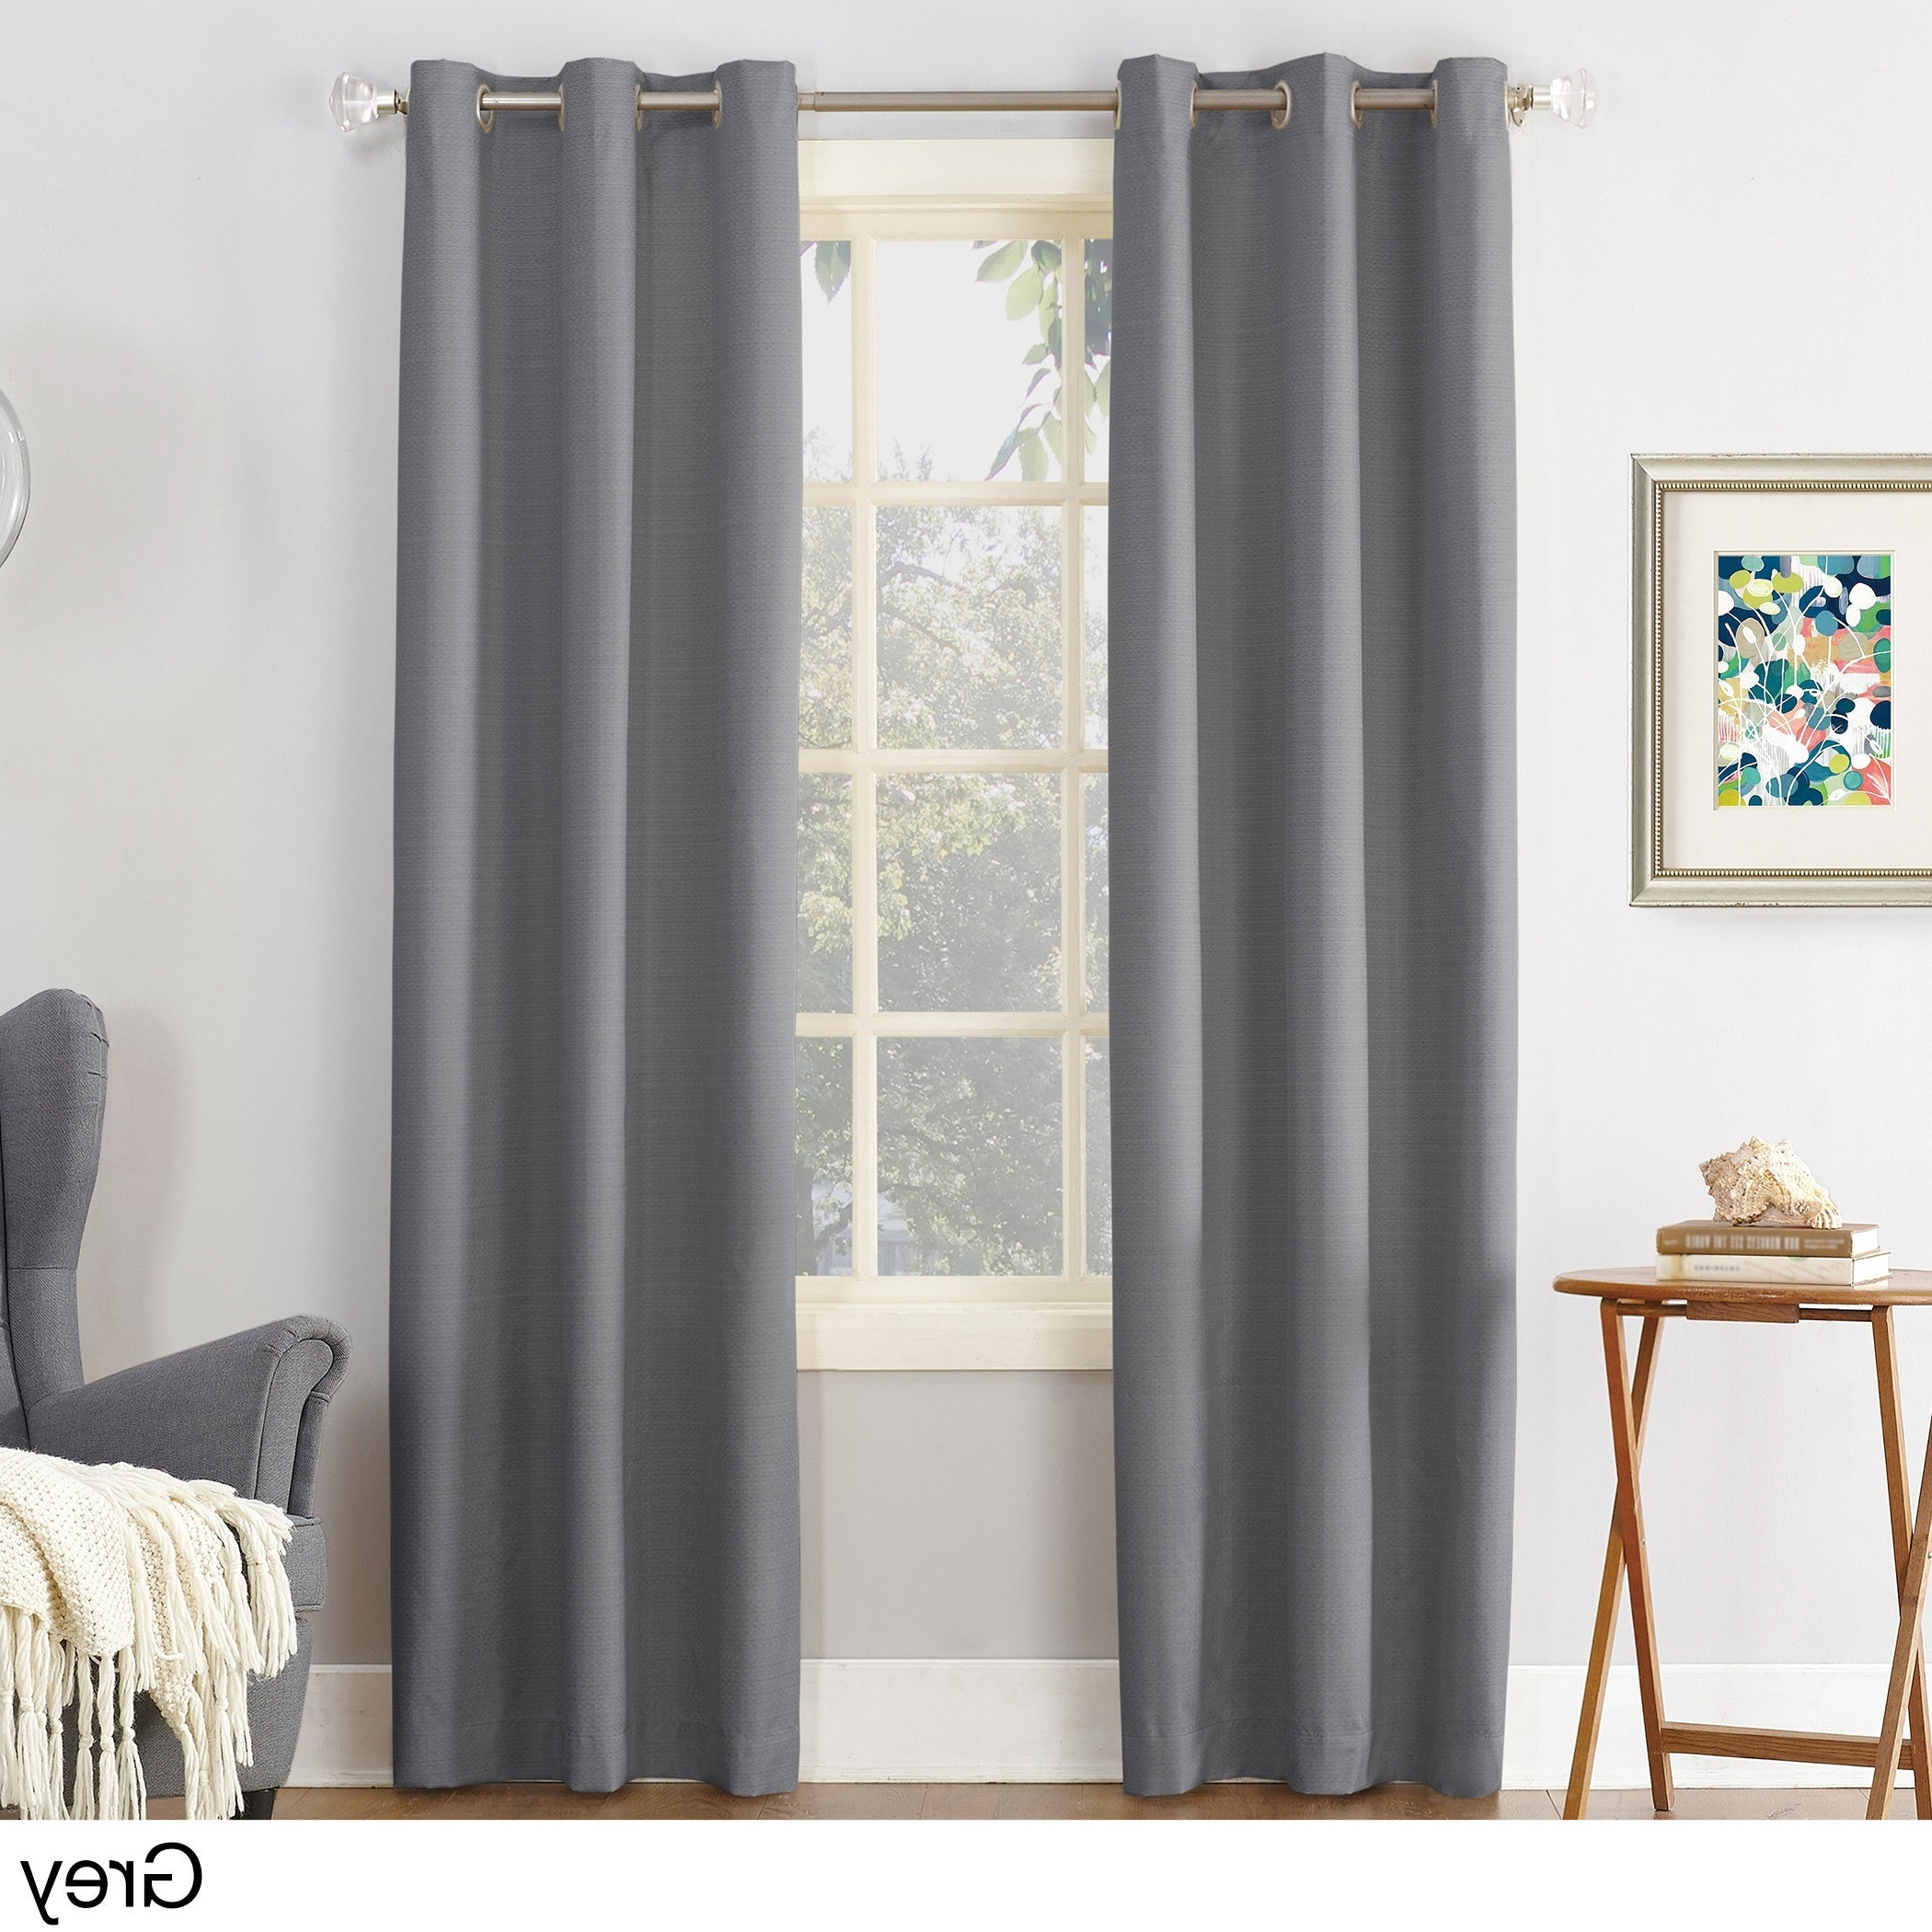 Cooper Textured Thermal Insulated Grommet Curtain Panels Pertaining To 2021 Sun Zero Cooper Textured Thermal Insulated Grommet Curtain Panel (View 2 of 20)